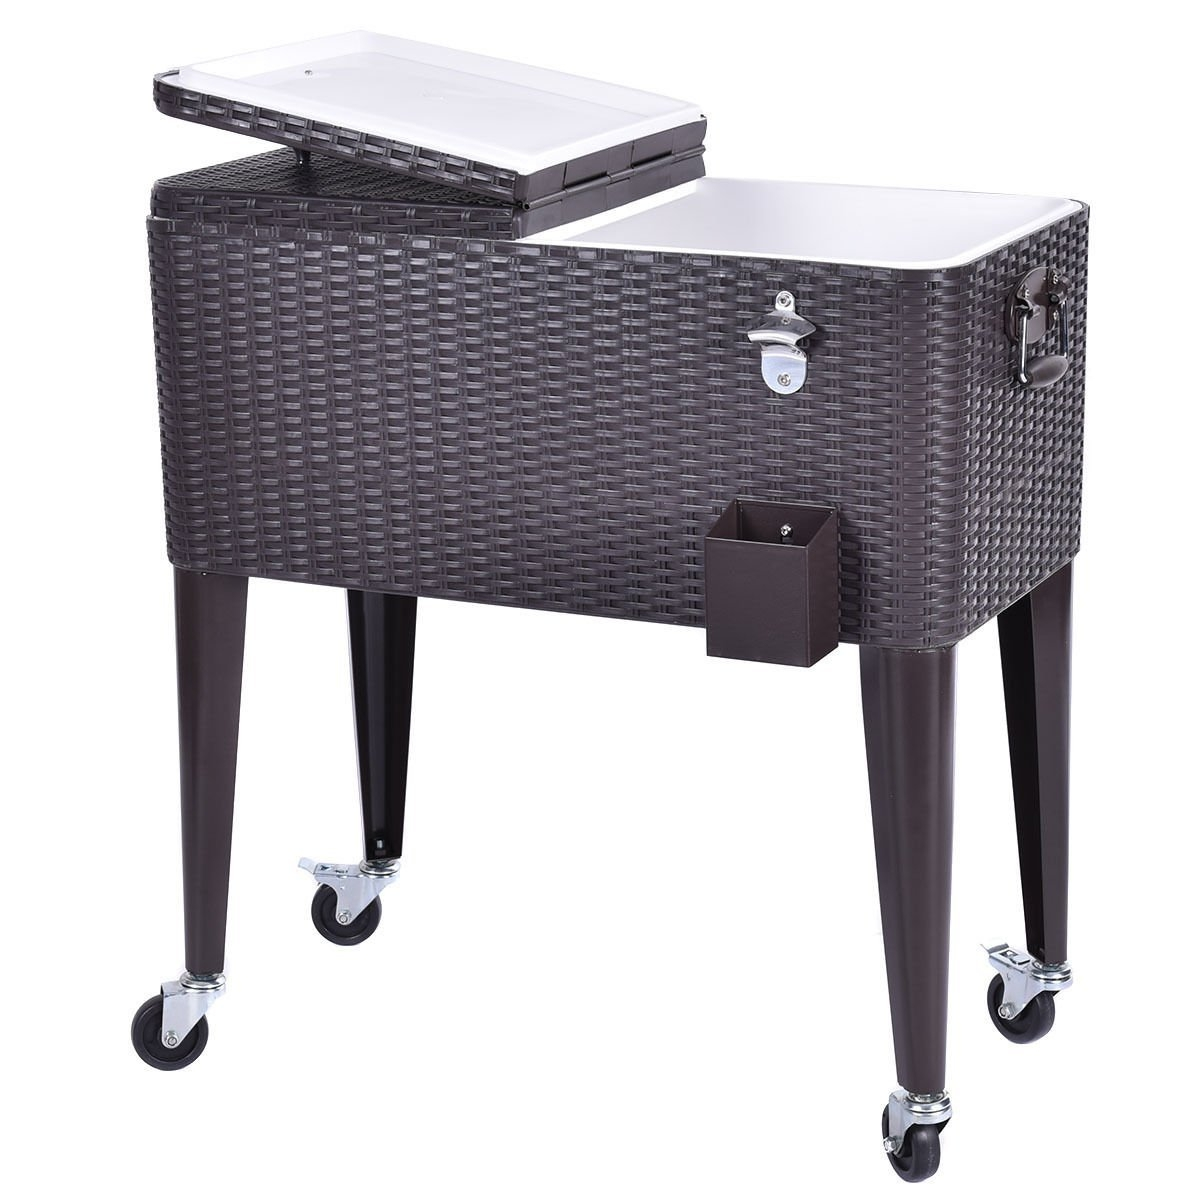 New MTN-G Outdoor Rattan 80QT Party Portable Rolling Cooler Cart Ice Beer Beverage Chest